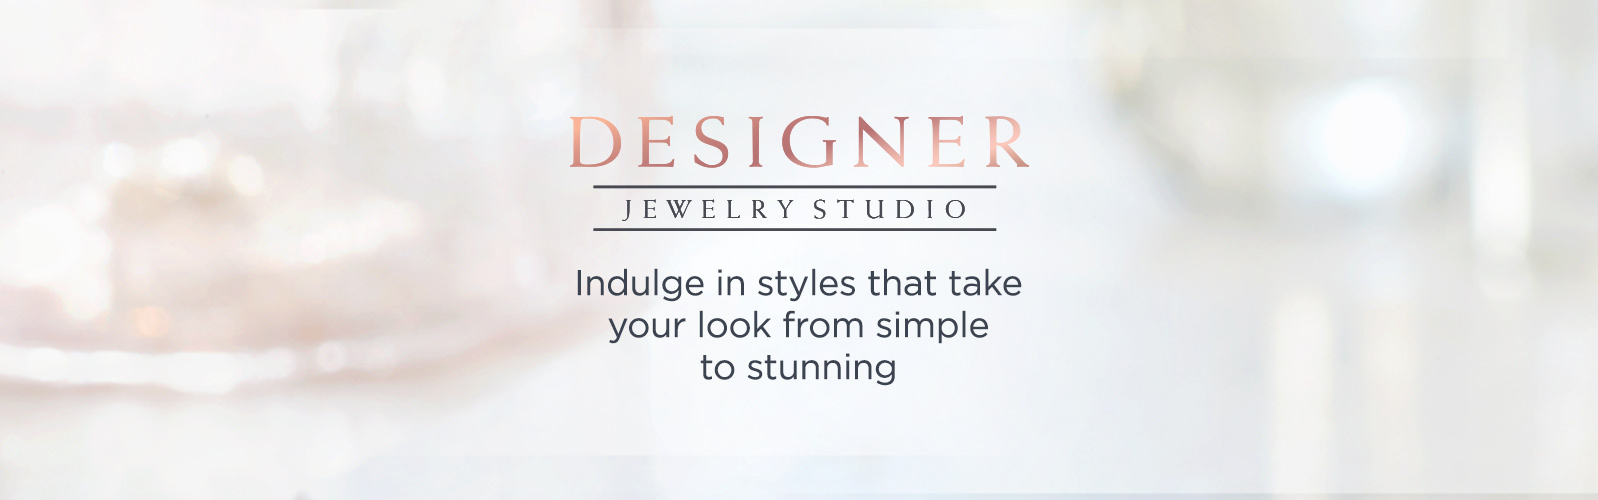 Designer Jewelry Studio — Indulge in styles that take your look from simple to stunning